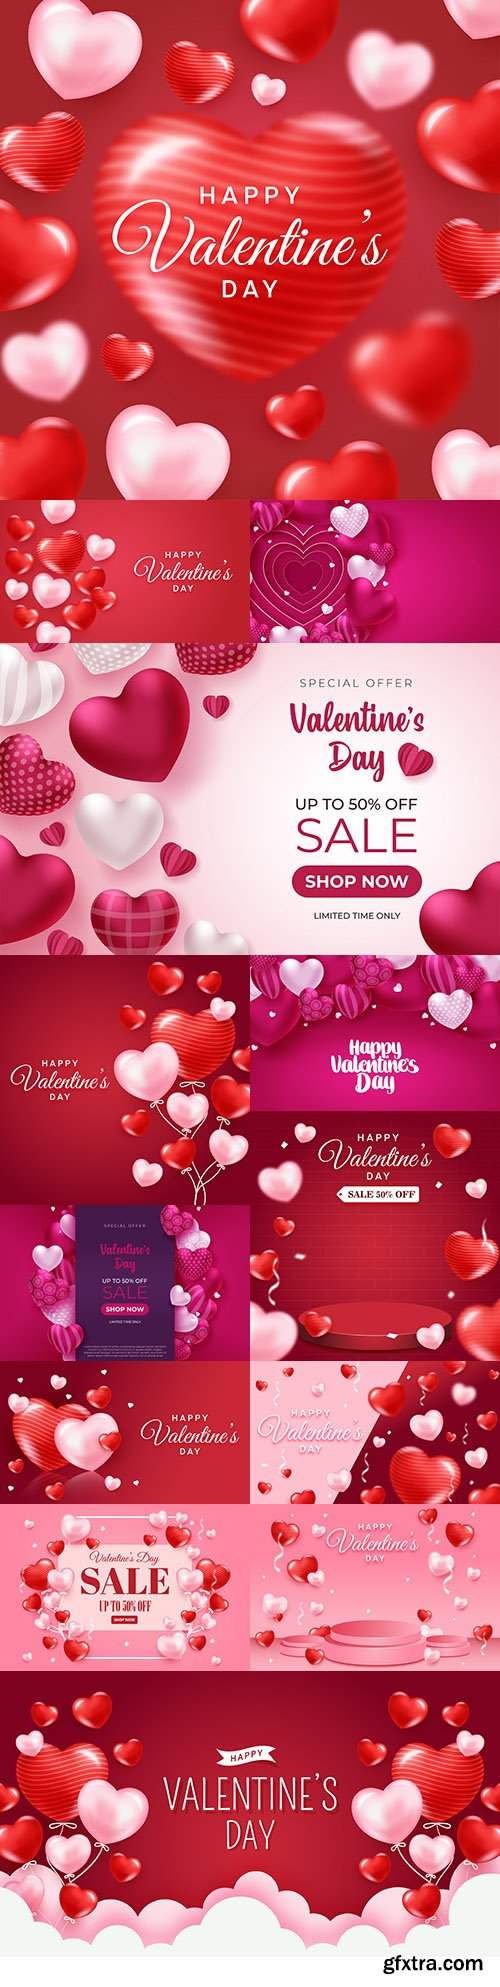 Valentine's Day illustrations with heart-shaped balloons